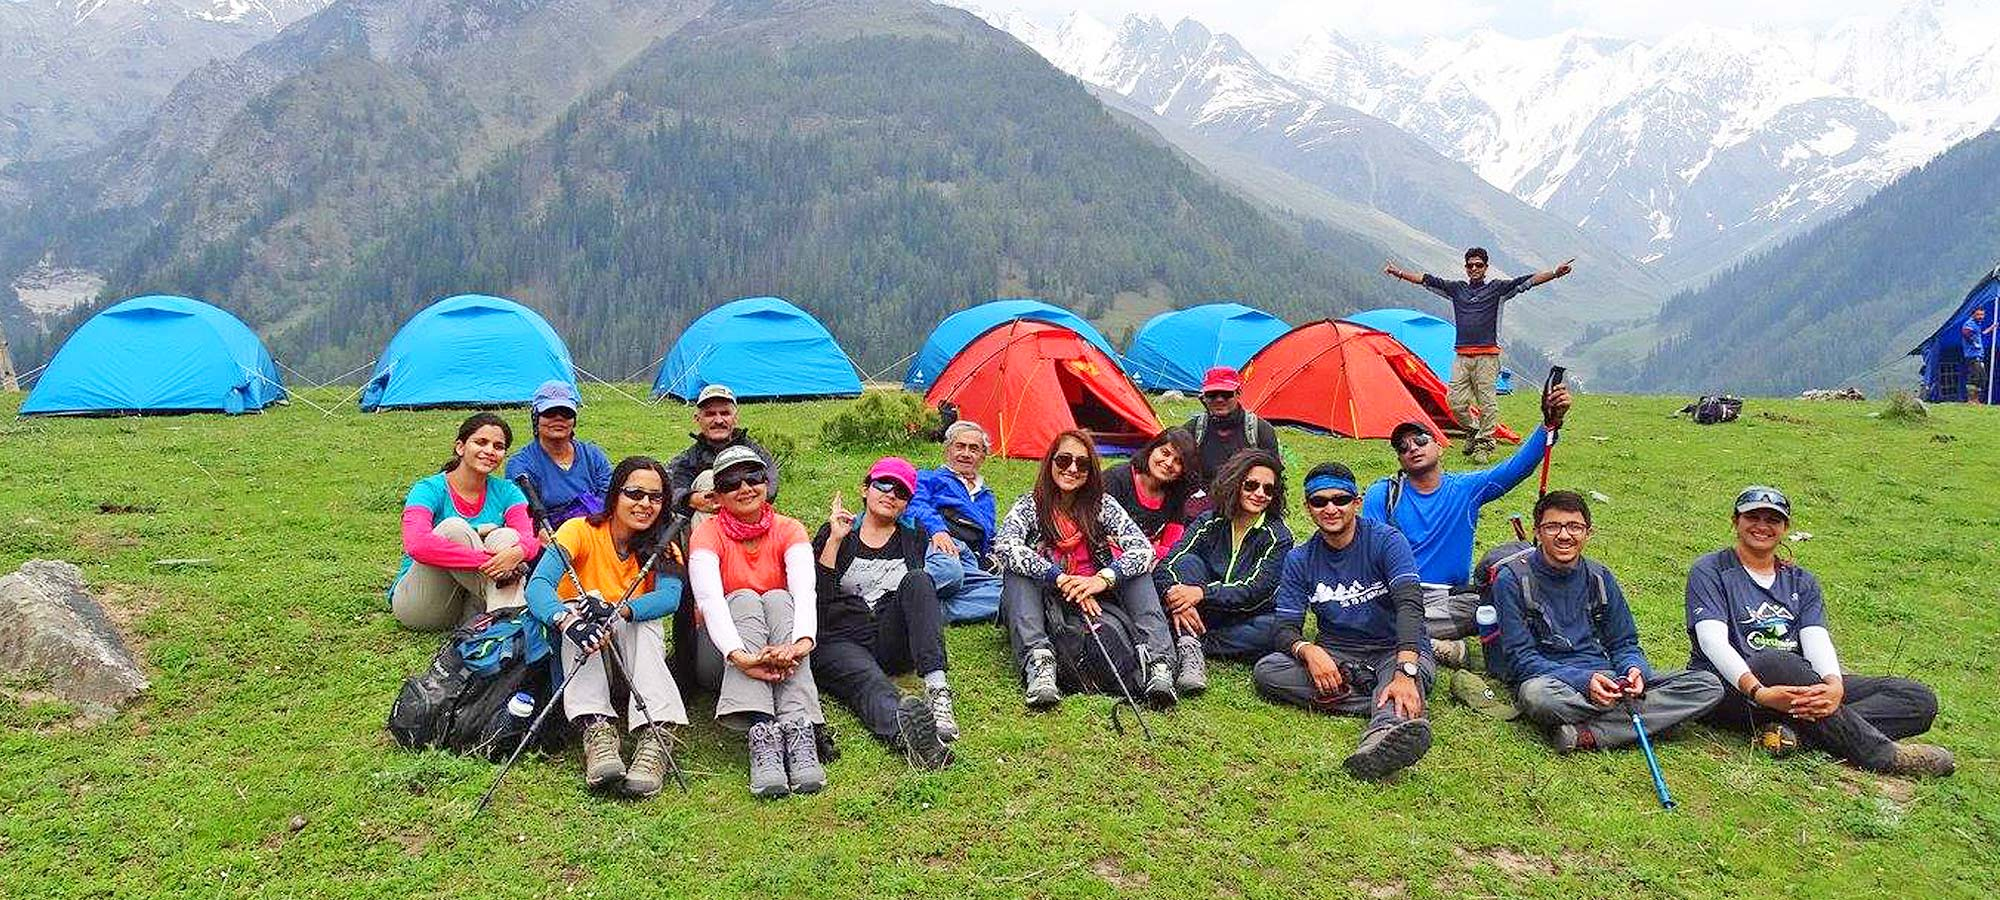 trekking in himachal, treks in himachal, best trekking agency in himachal